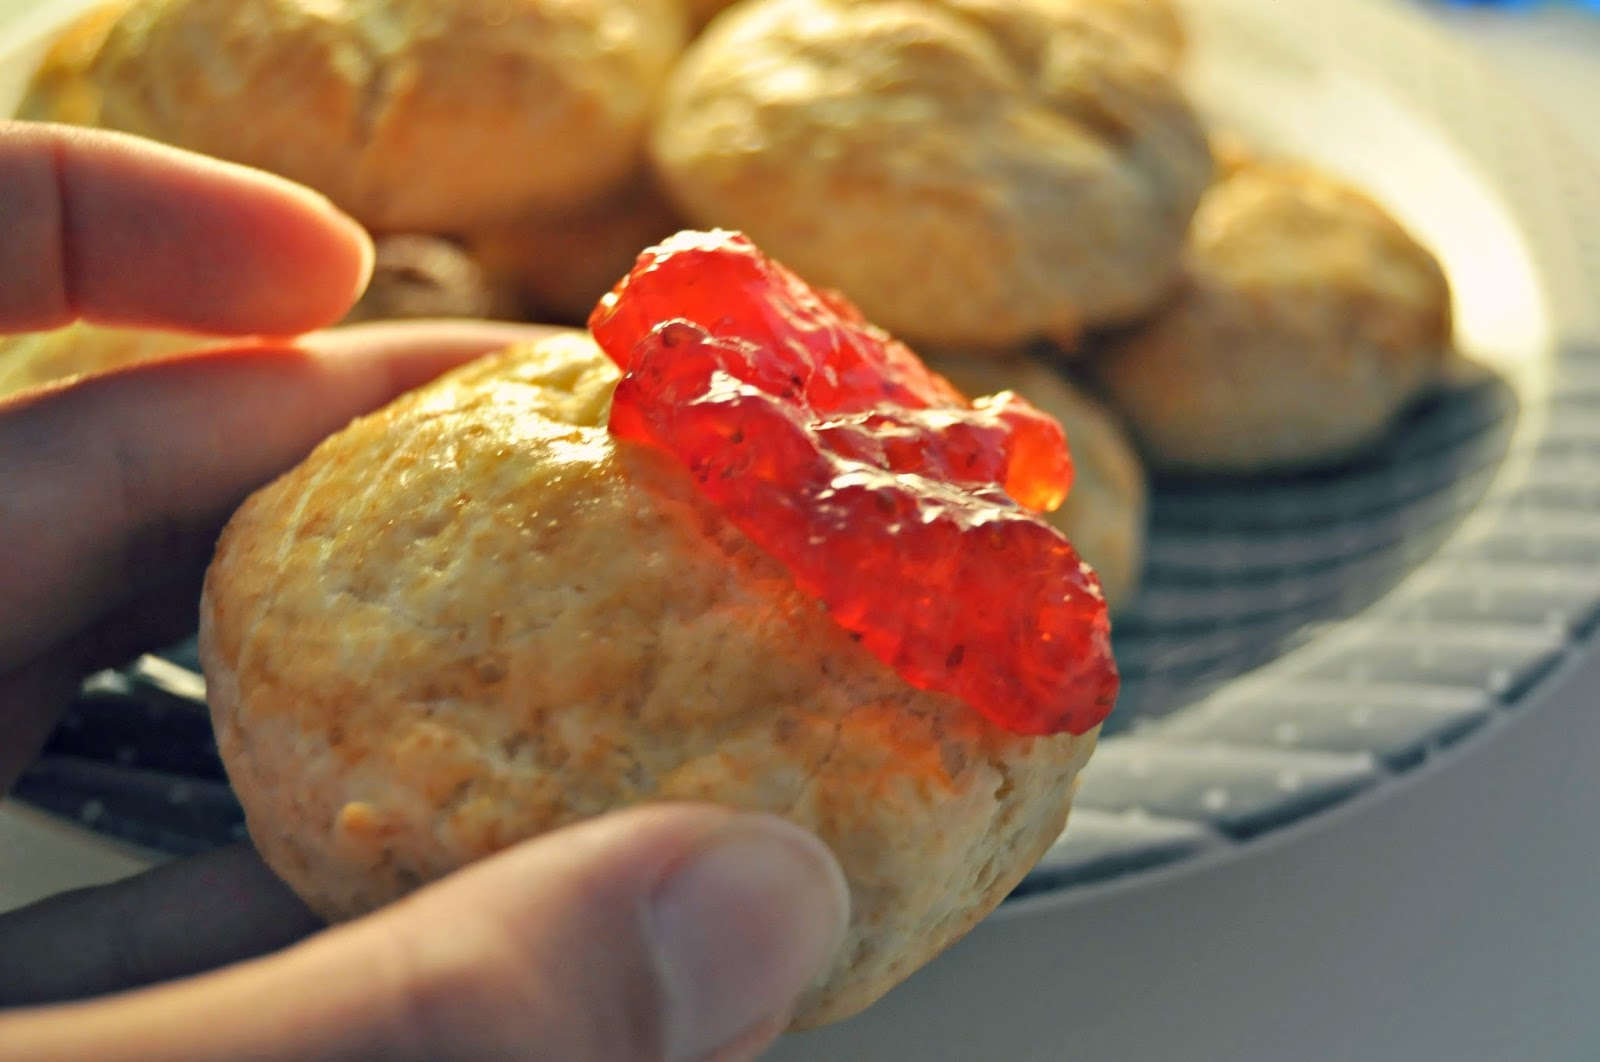 home-baked scones